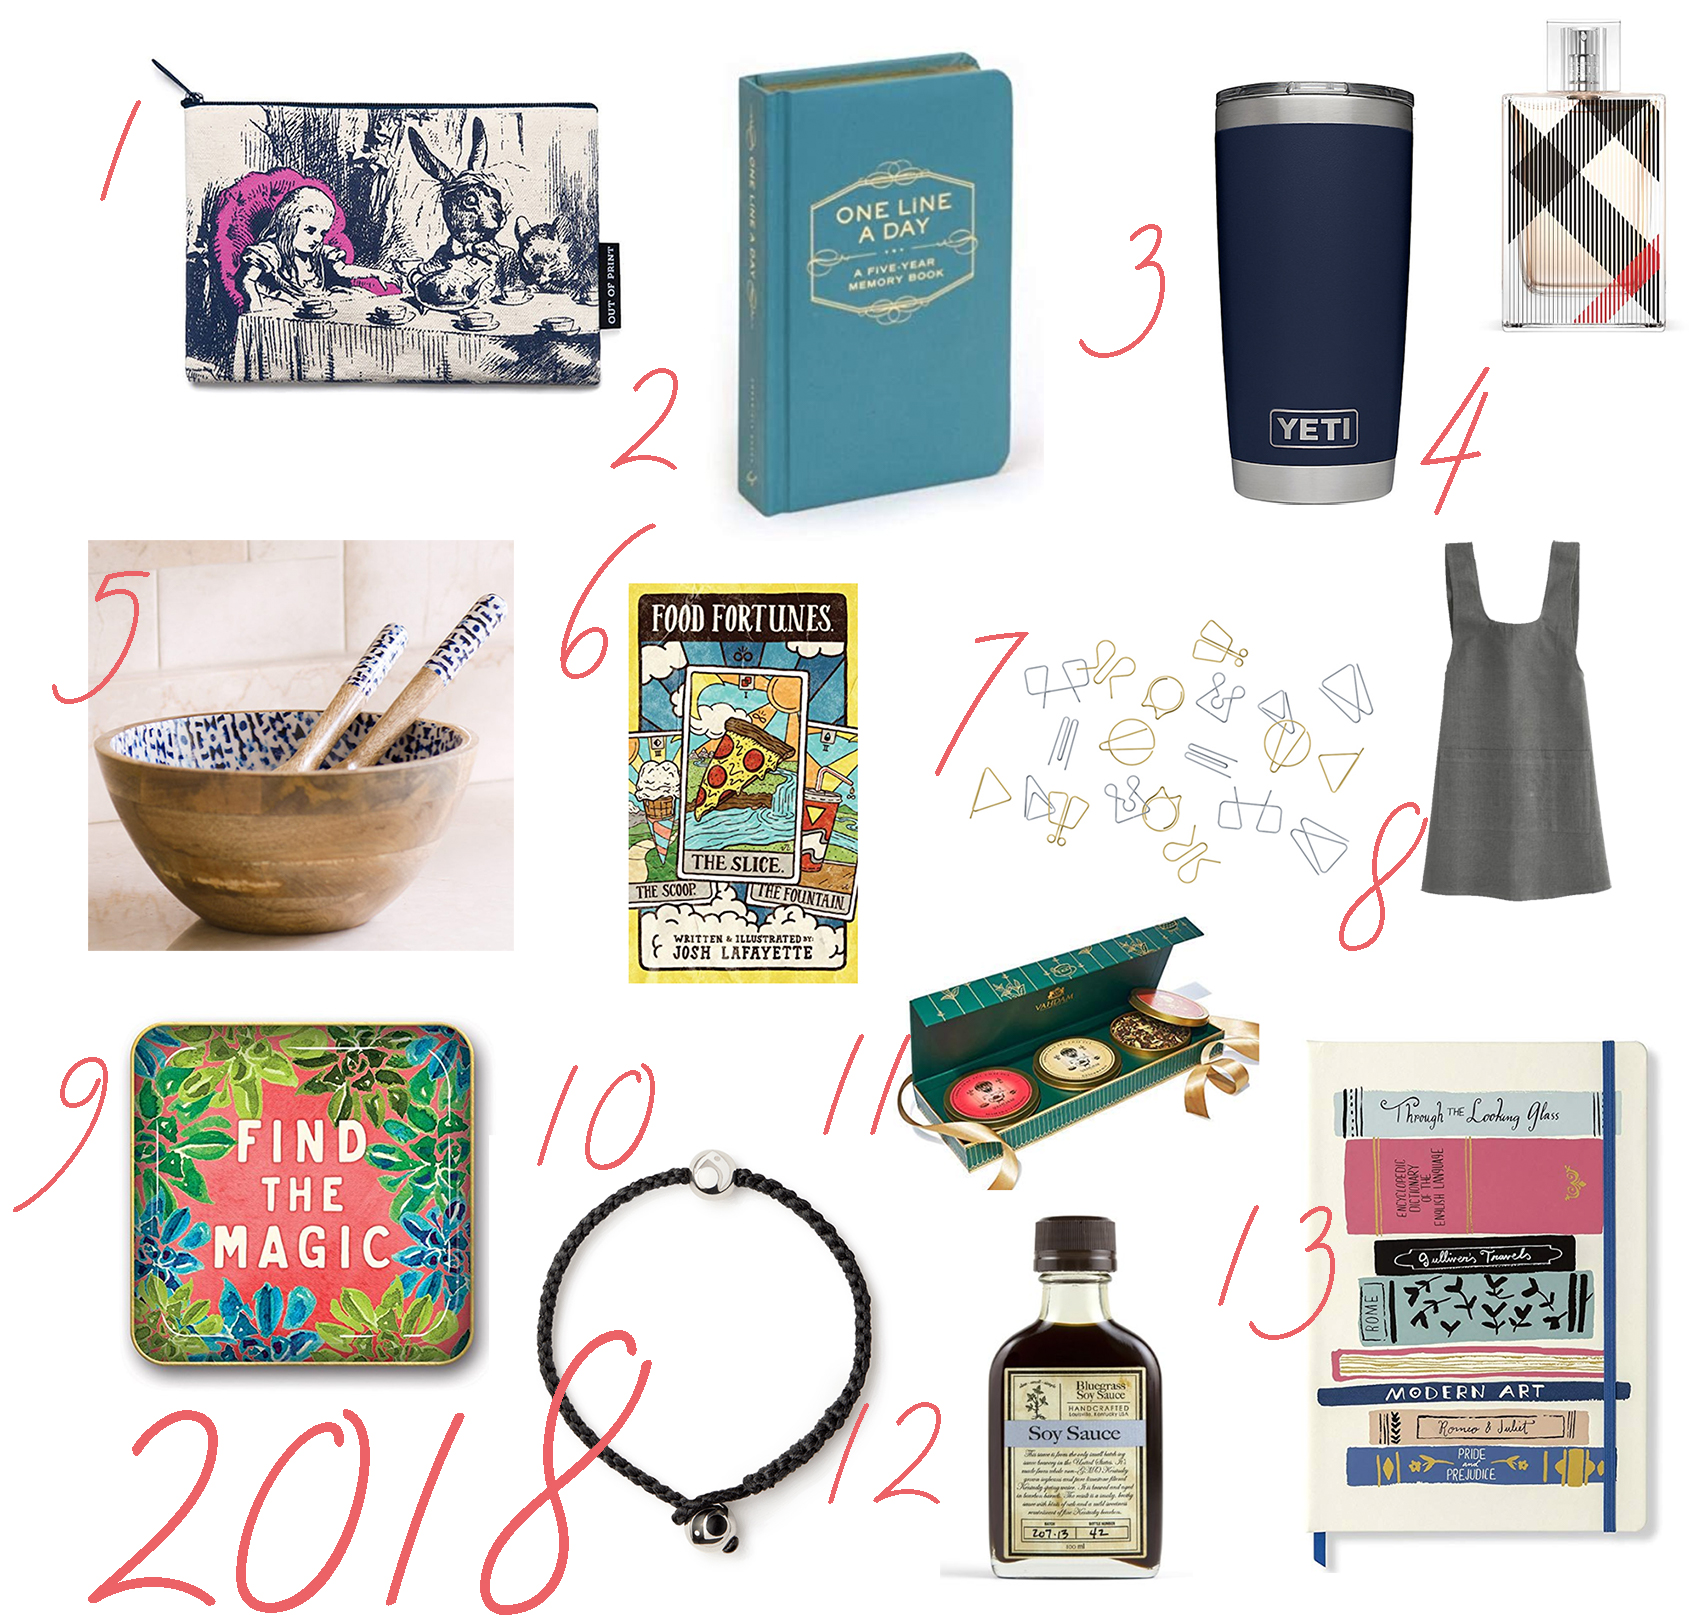 2018 Gifts for Under $50, Mostly